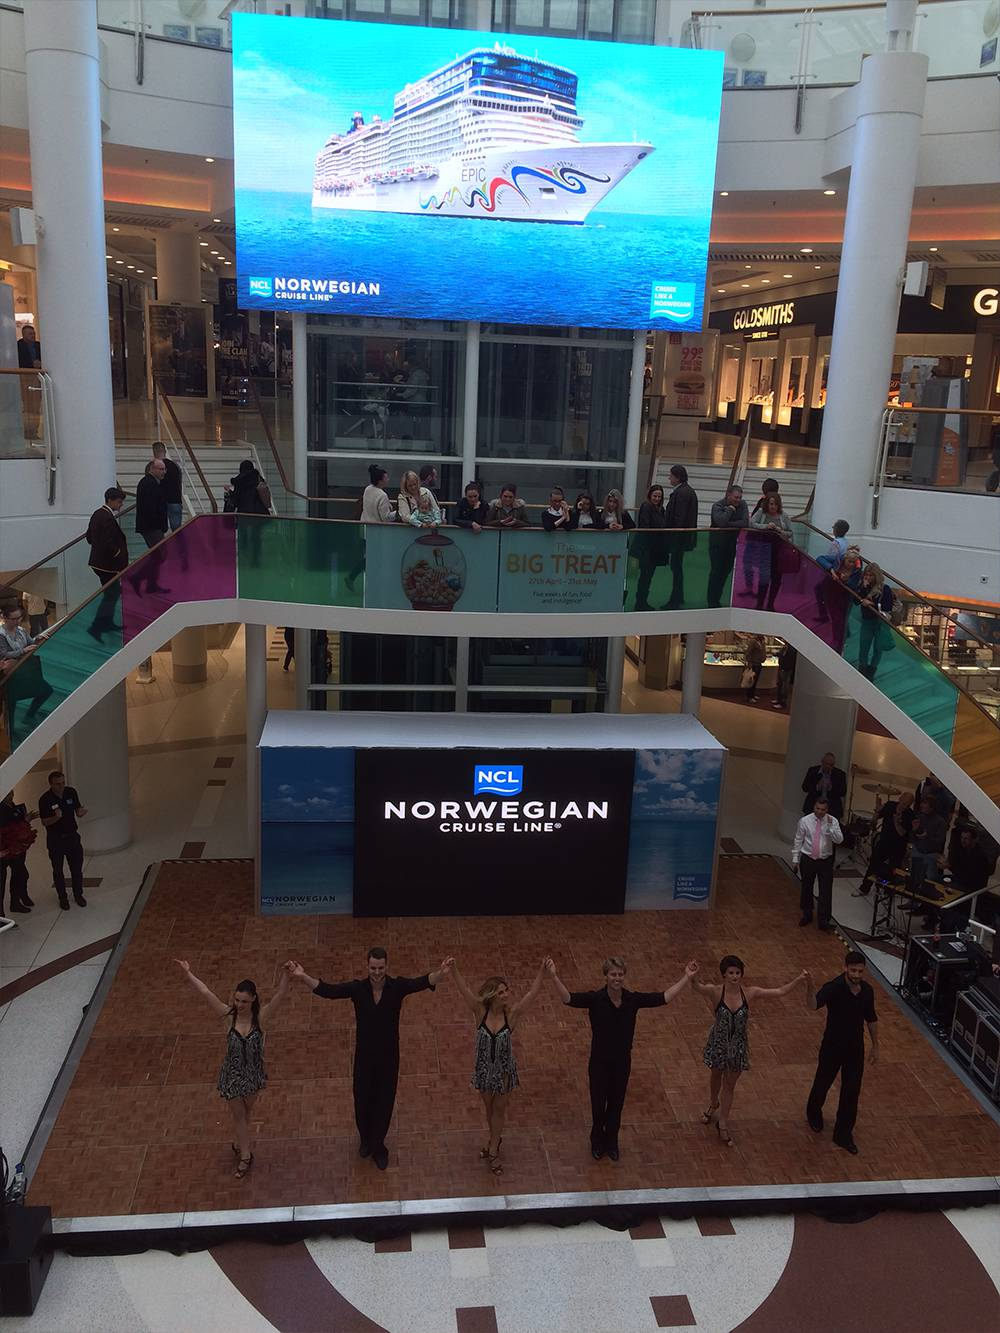 Shopping Centre Exhibition Roadshow UK Audio Visual Production & Staging